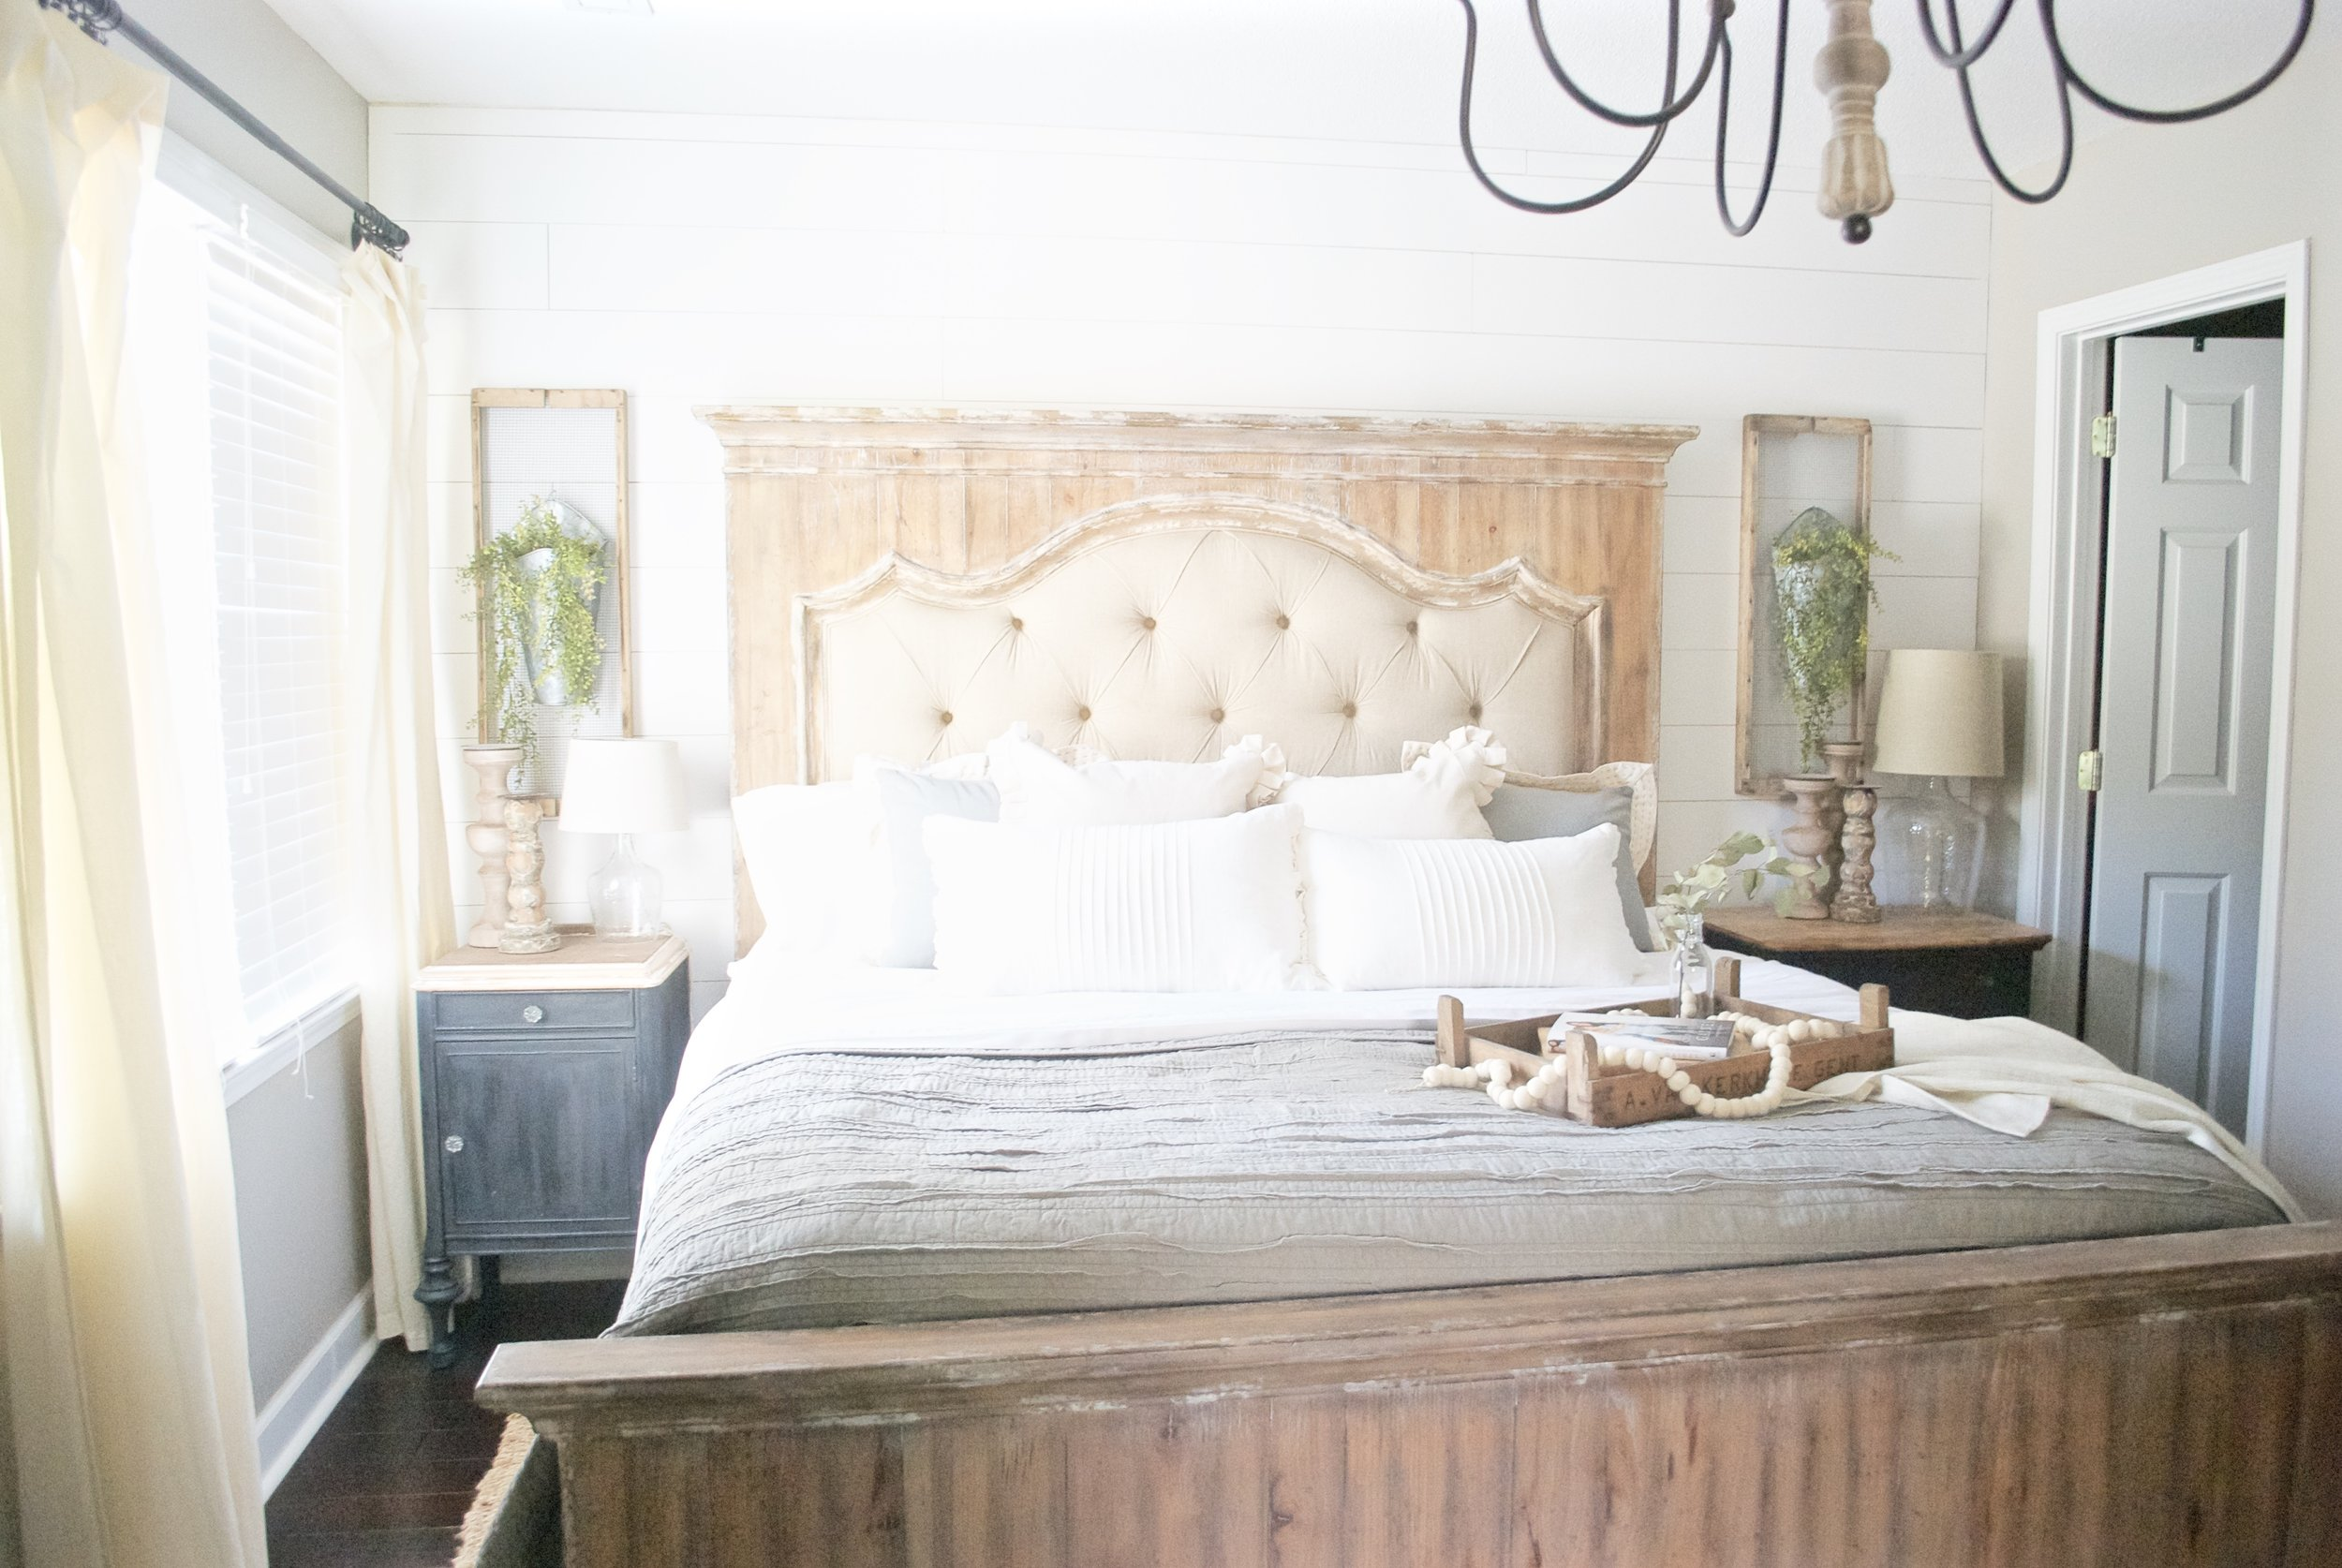 French Country Farmhouse Style Bed- Plum Pretty Decor and Design